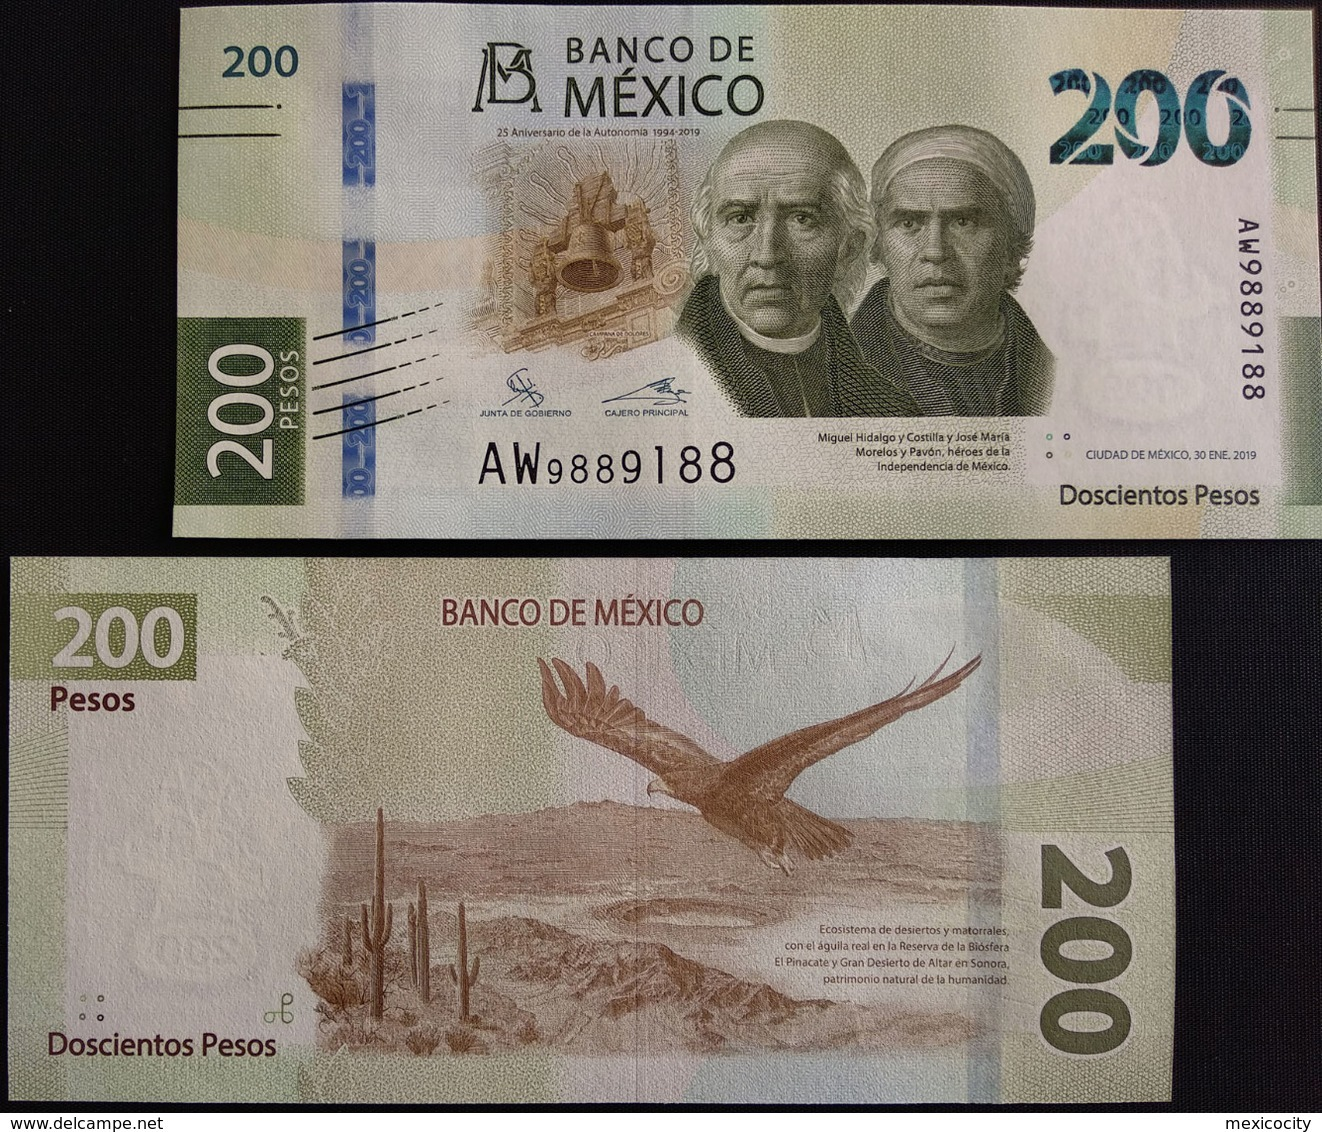 MEXICO 2019 + NEW $200 Paper Banknote, Eagle And Cactii In Desert Dsn., Mint, Crisp, Hard To Find - Mexico